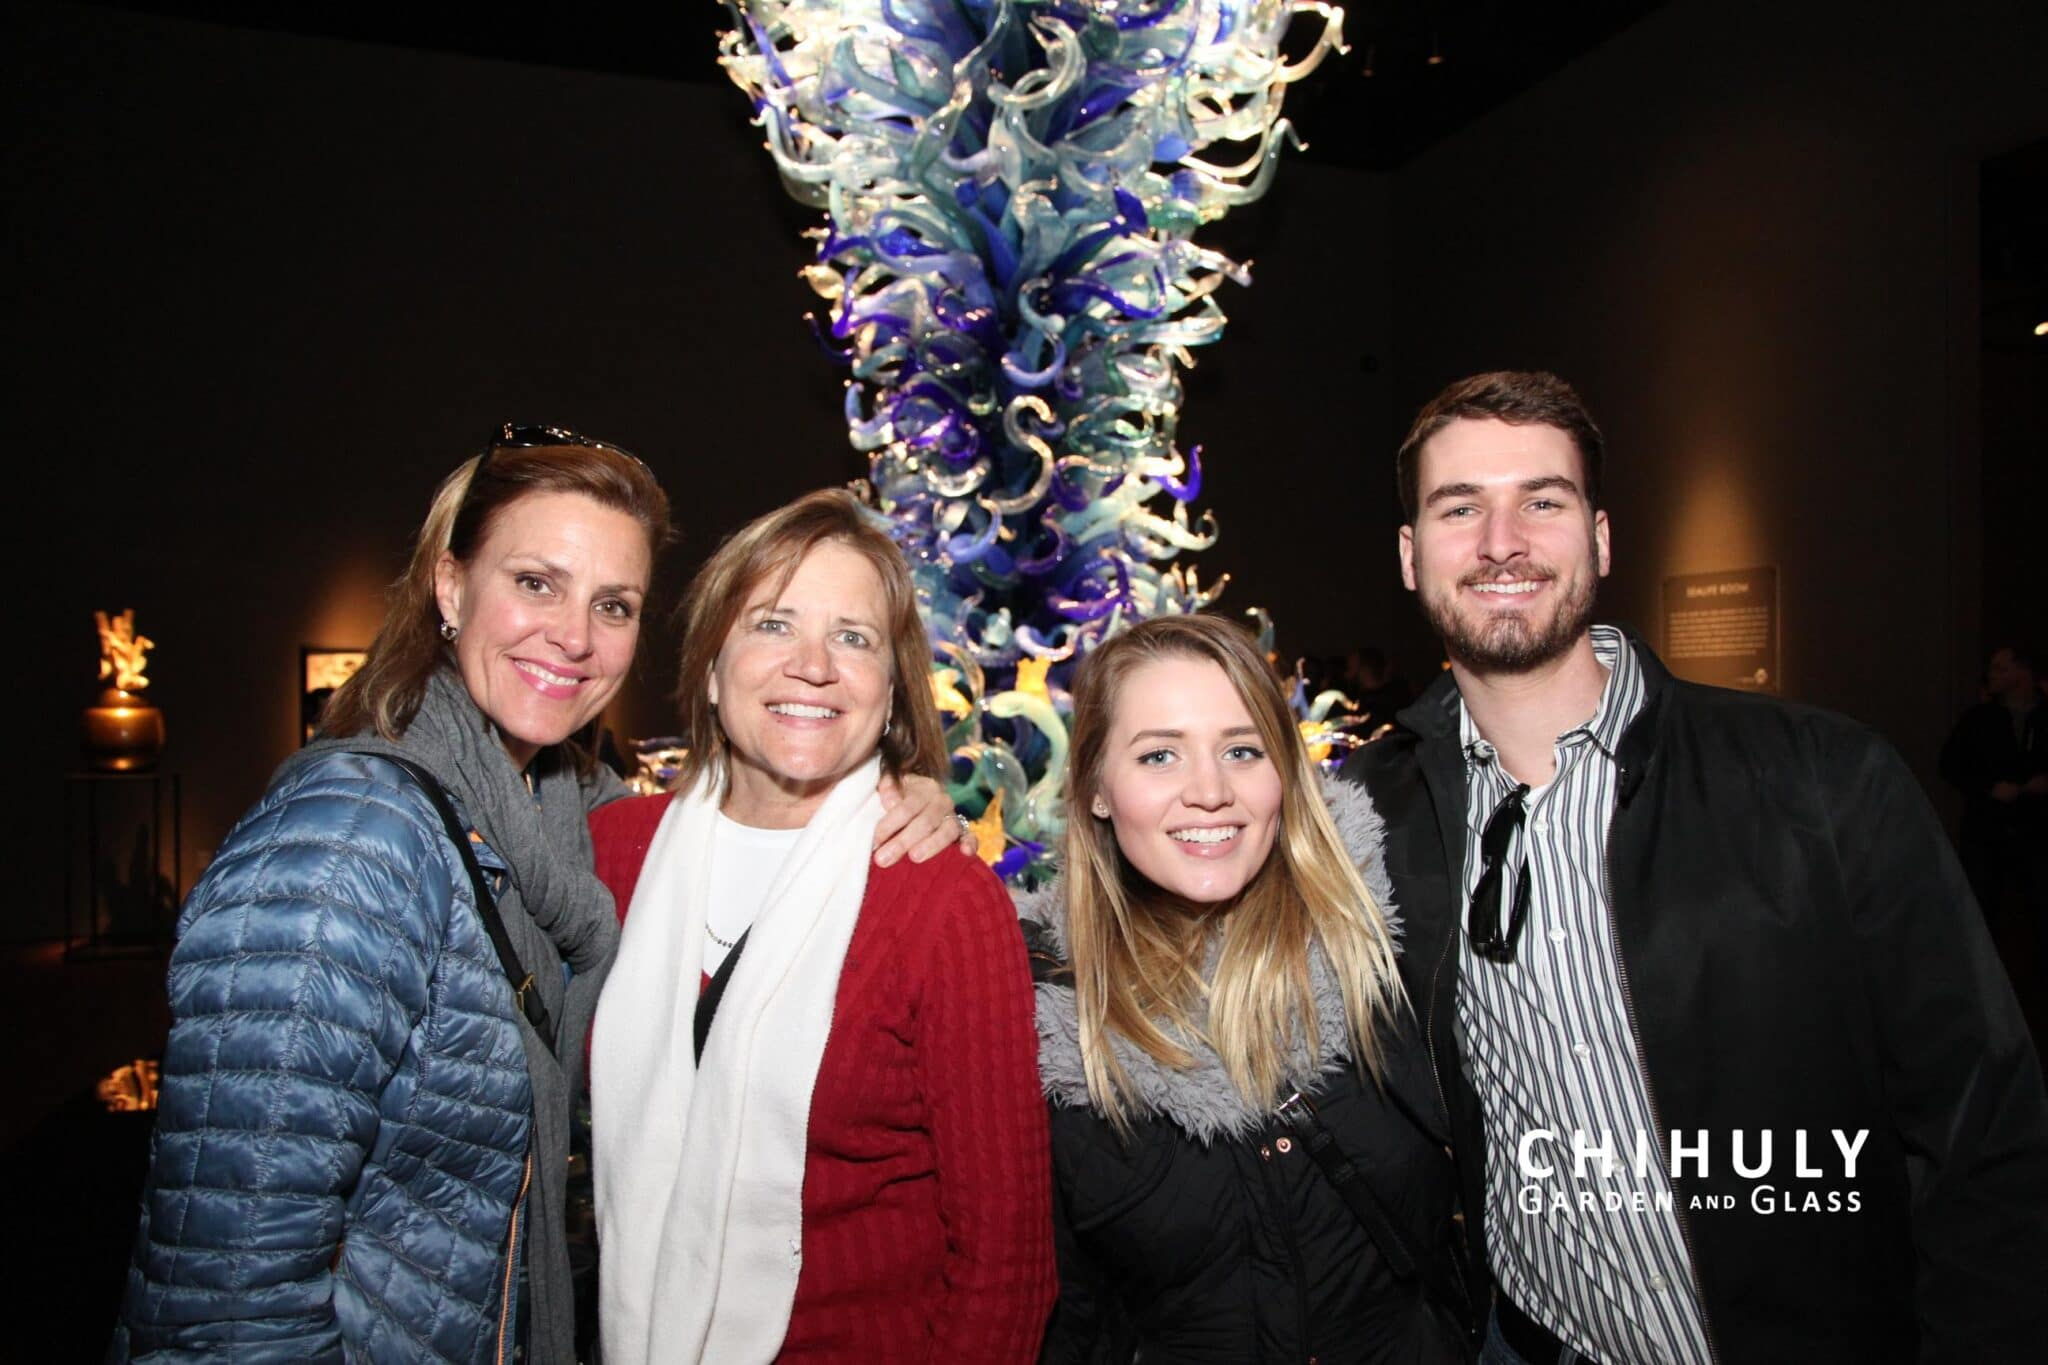 picture of two older woman and one younger woman with younger man standing in front of chihuly glass piece of artwork at the chihuly museum